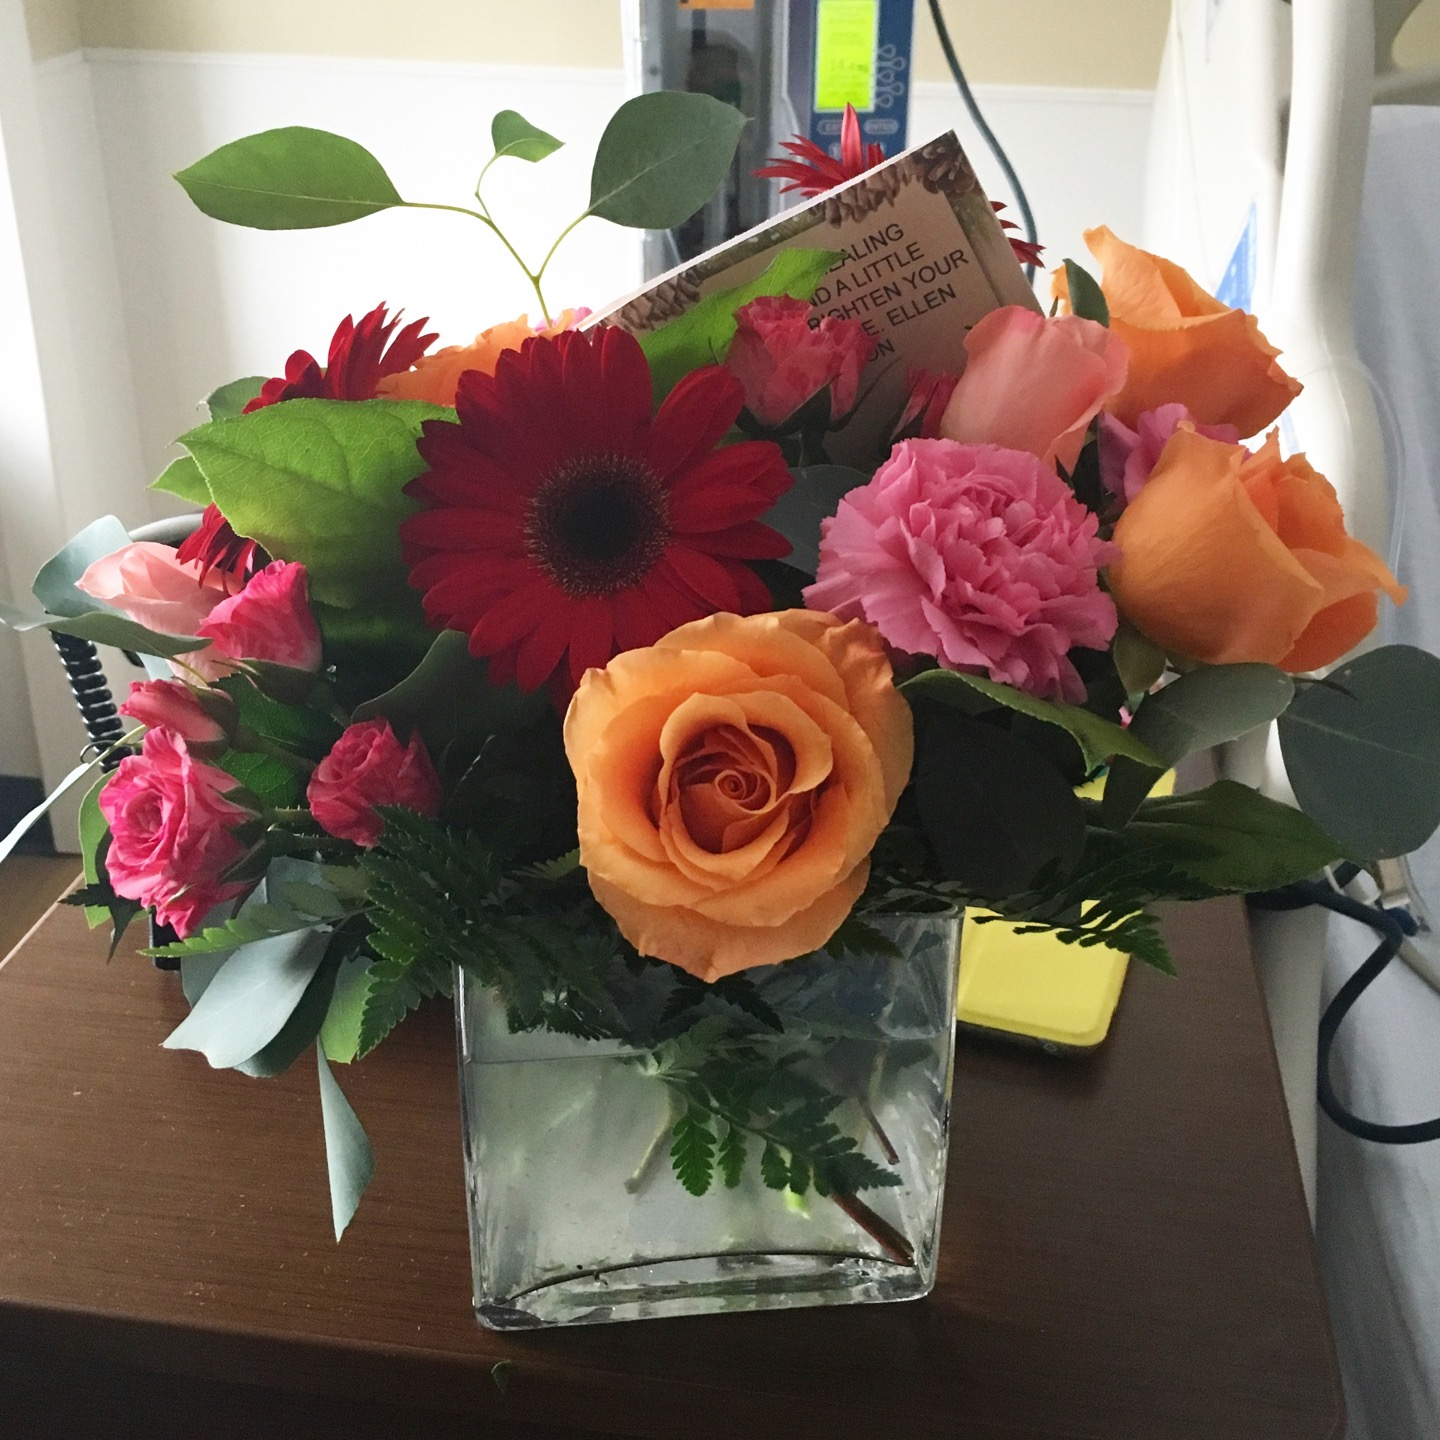 Thank you for the flowers, Ellen!